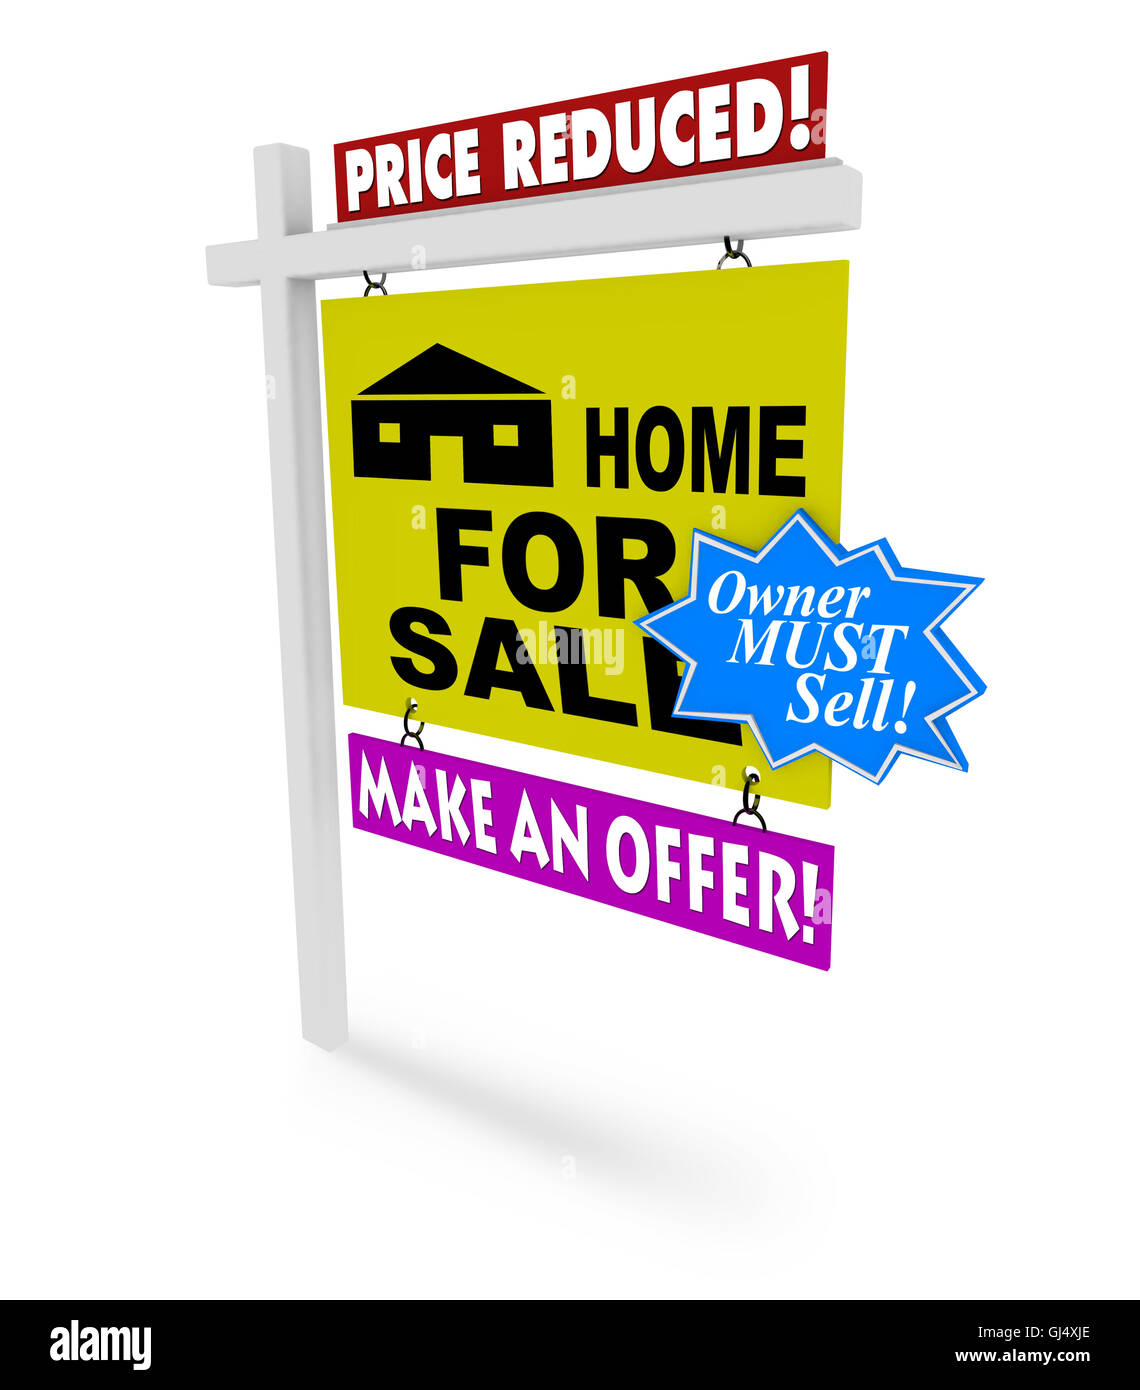 Price Reduced - Home for Sale Sign - Stock Image